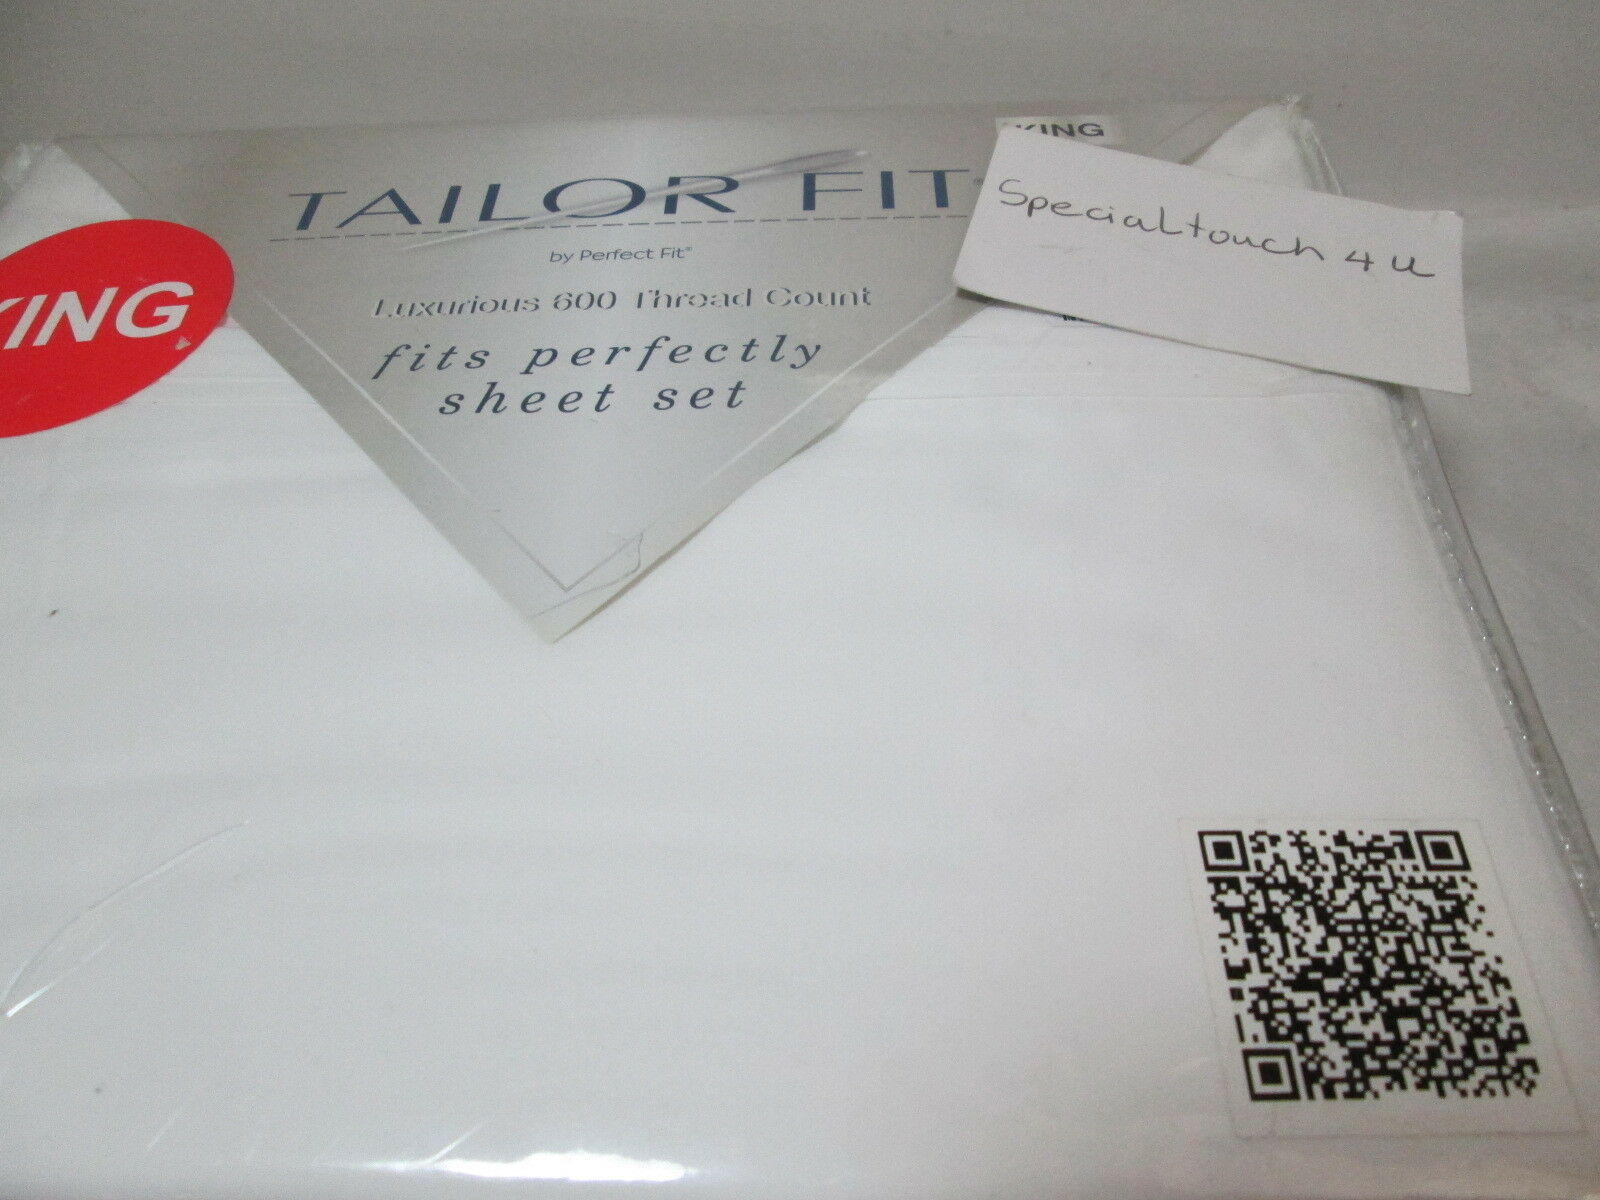 New Grace Home Fashions Tailor Fit by Perfect Fit White King Sheet Set 600 TC